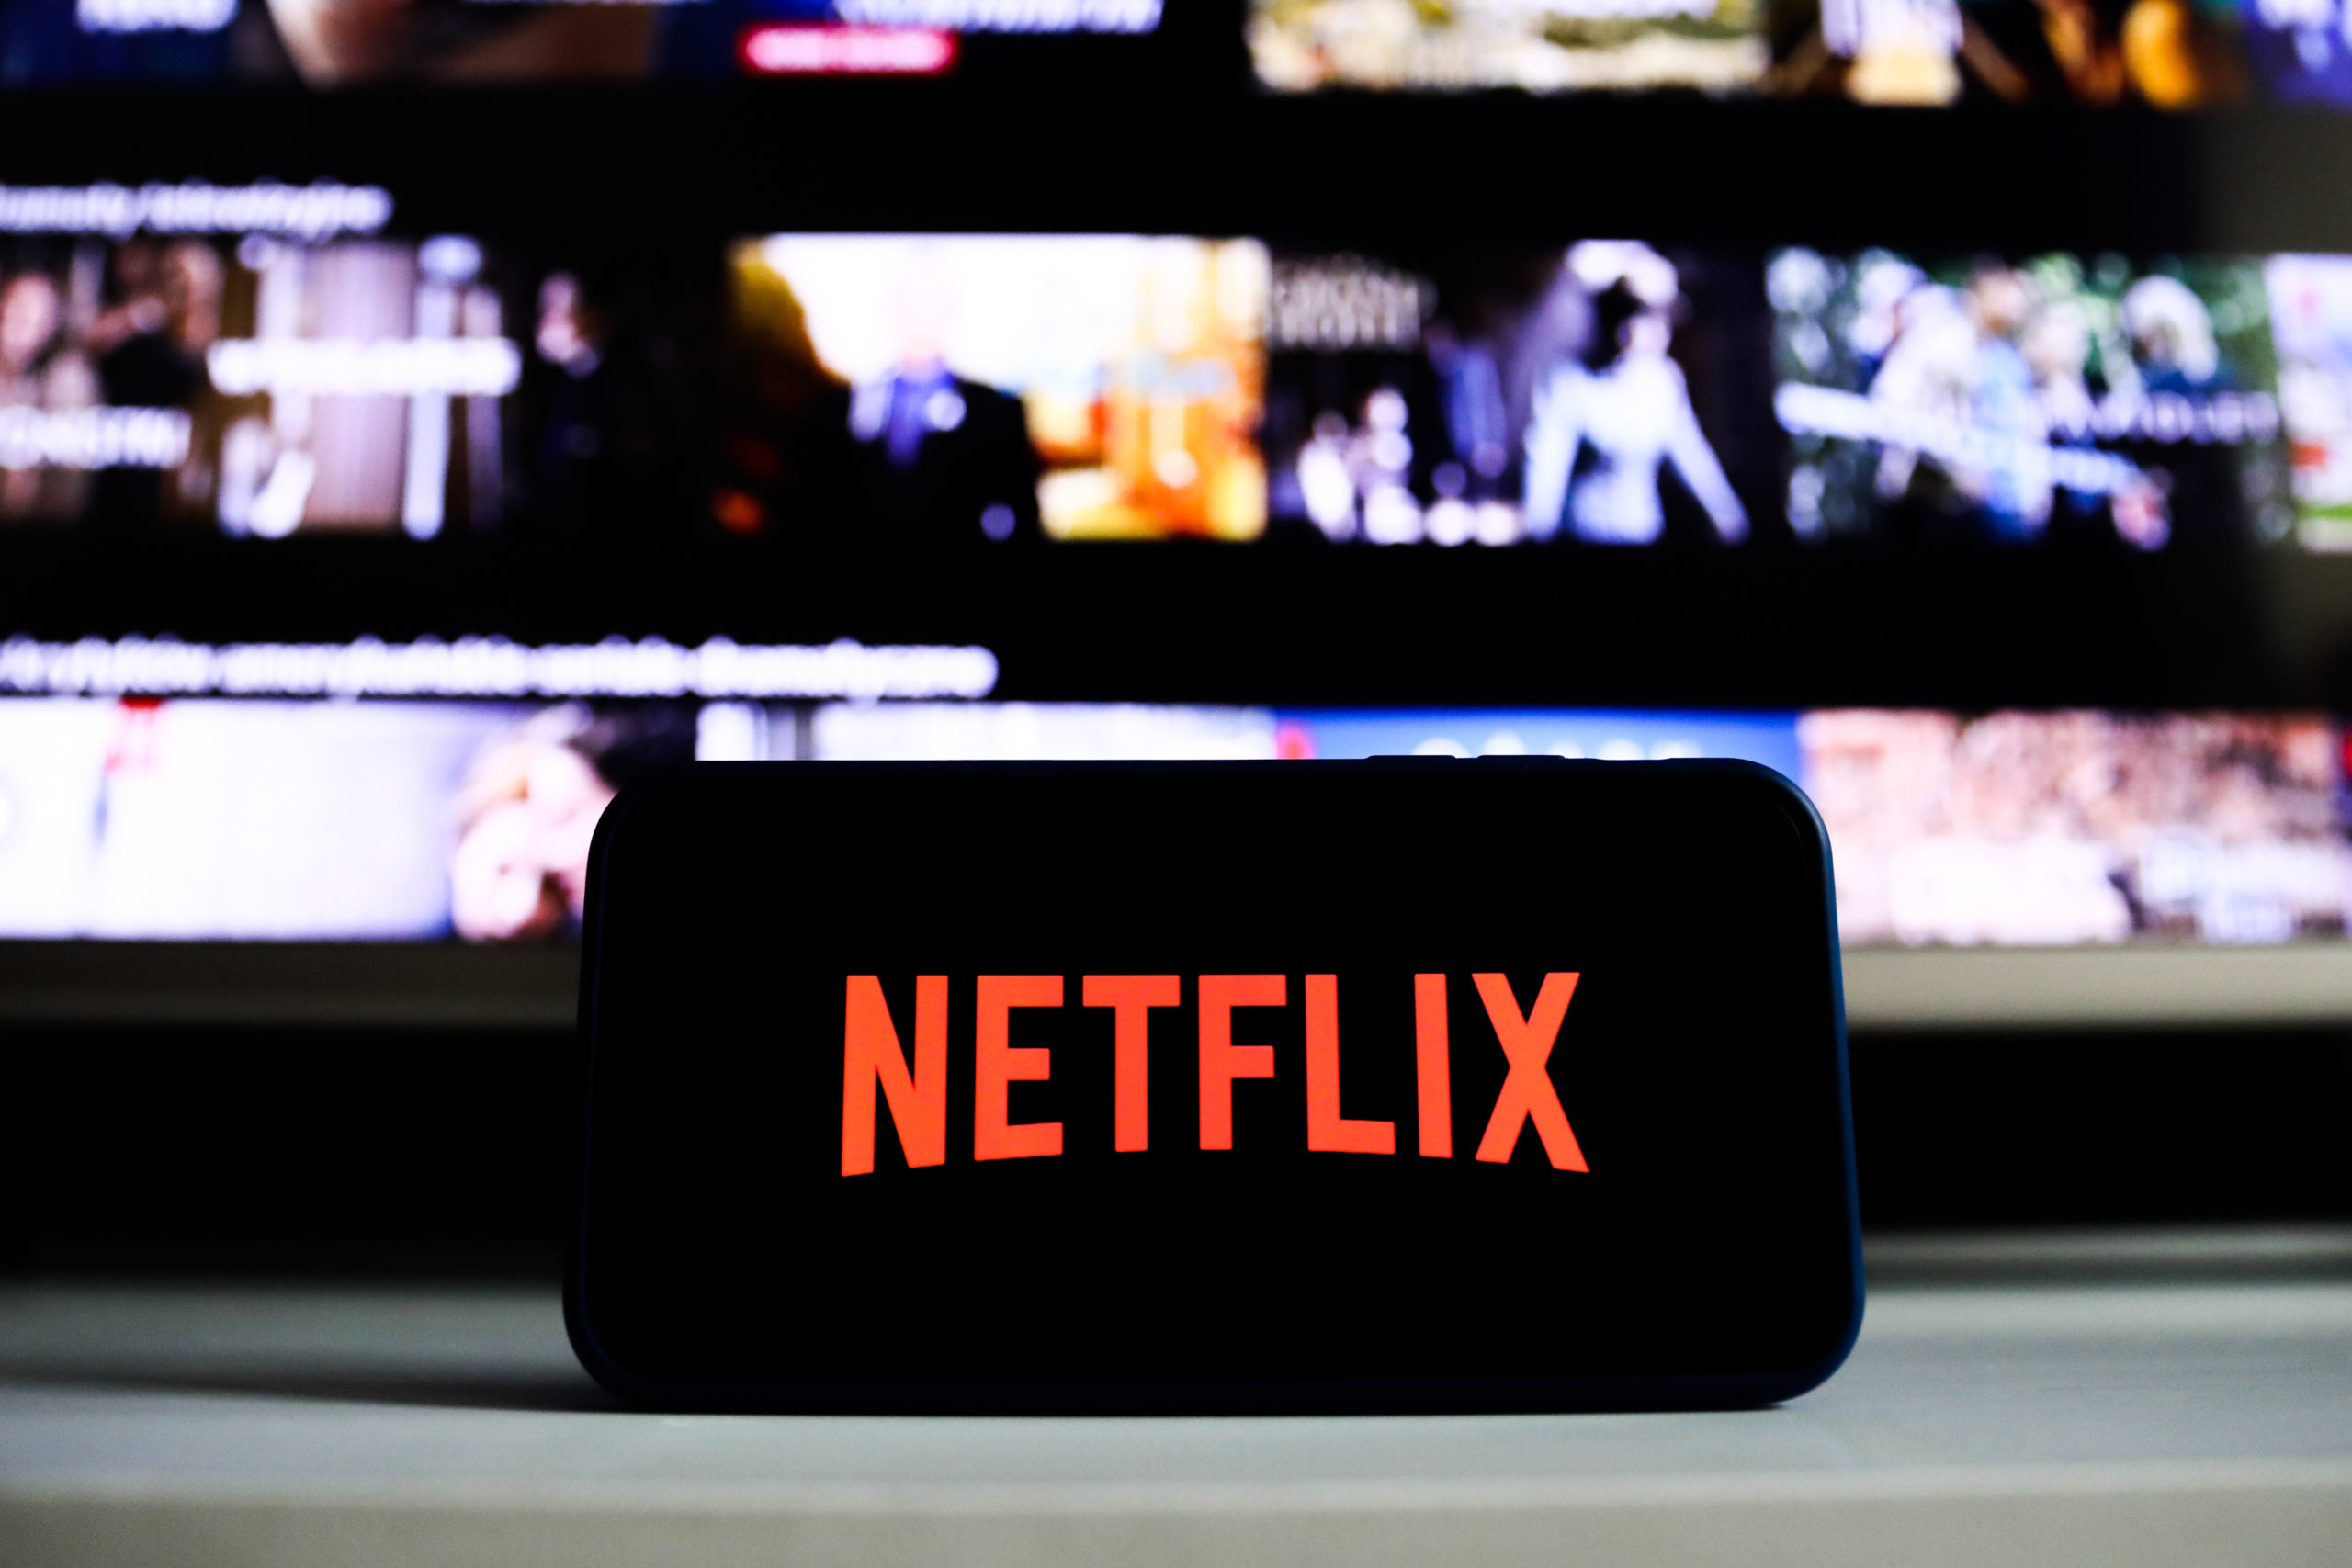 Netflix faced censorship from the Turkish government